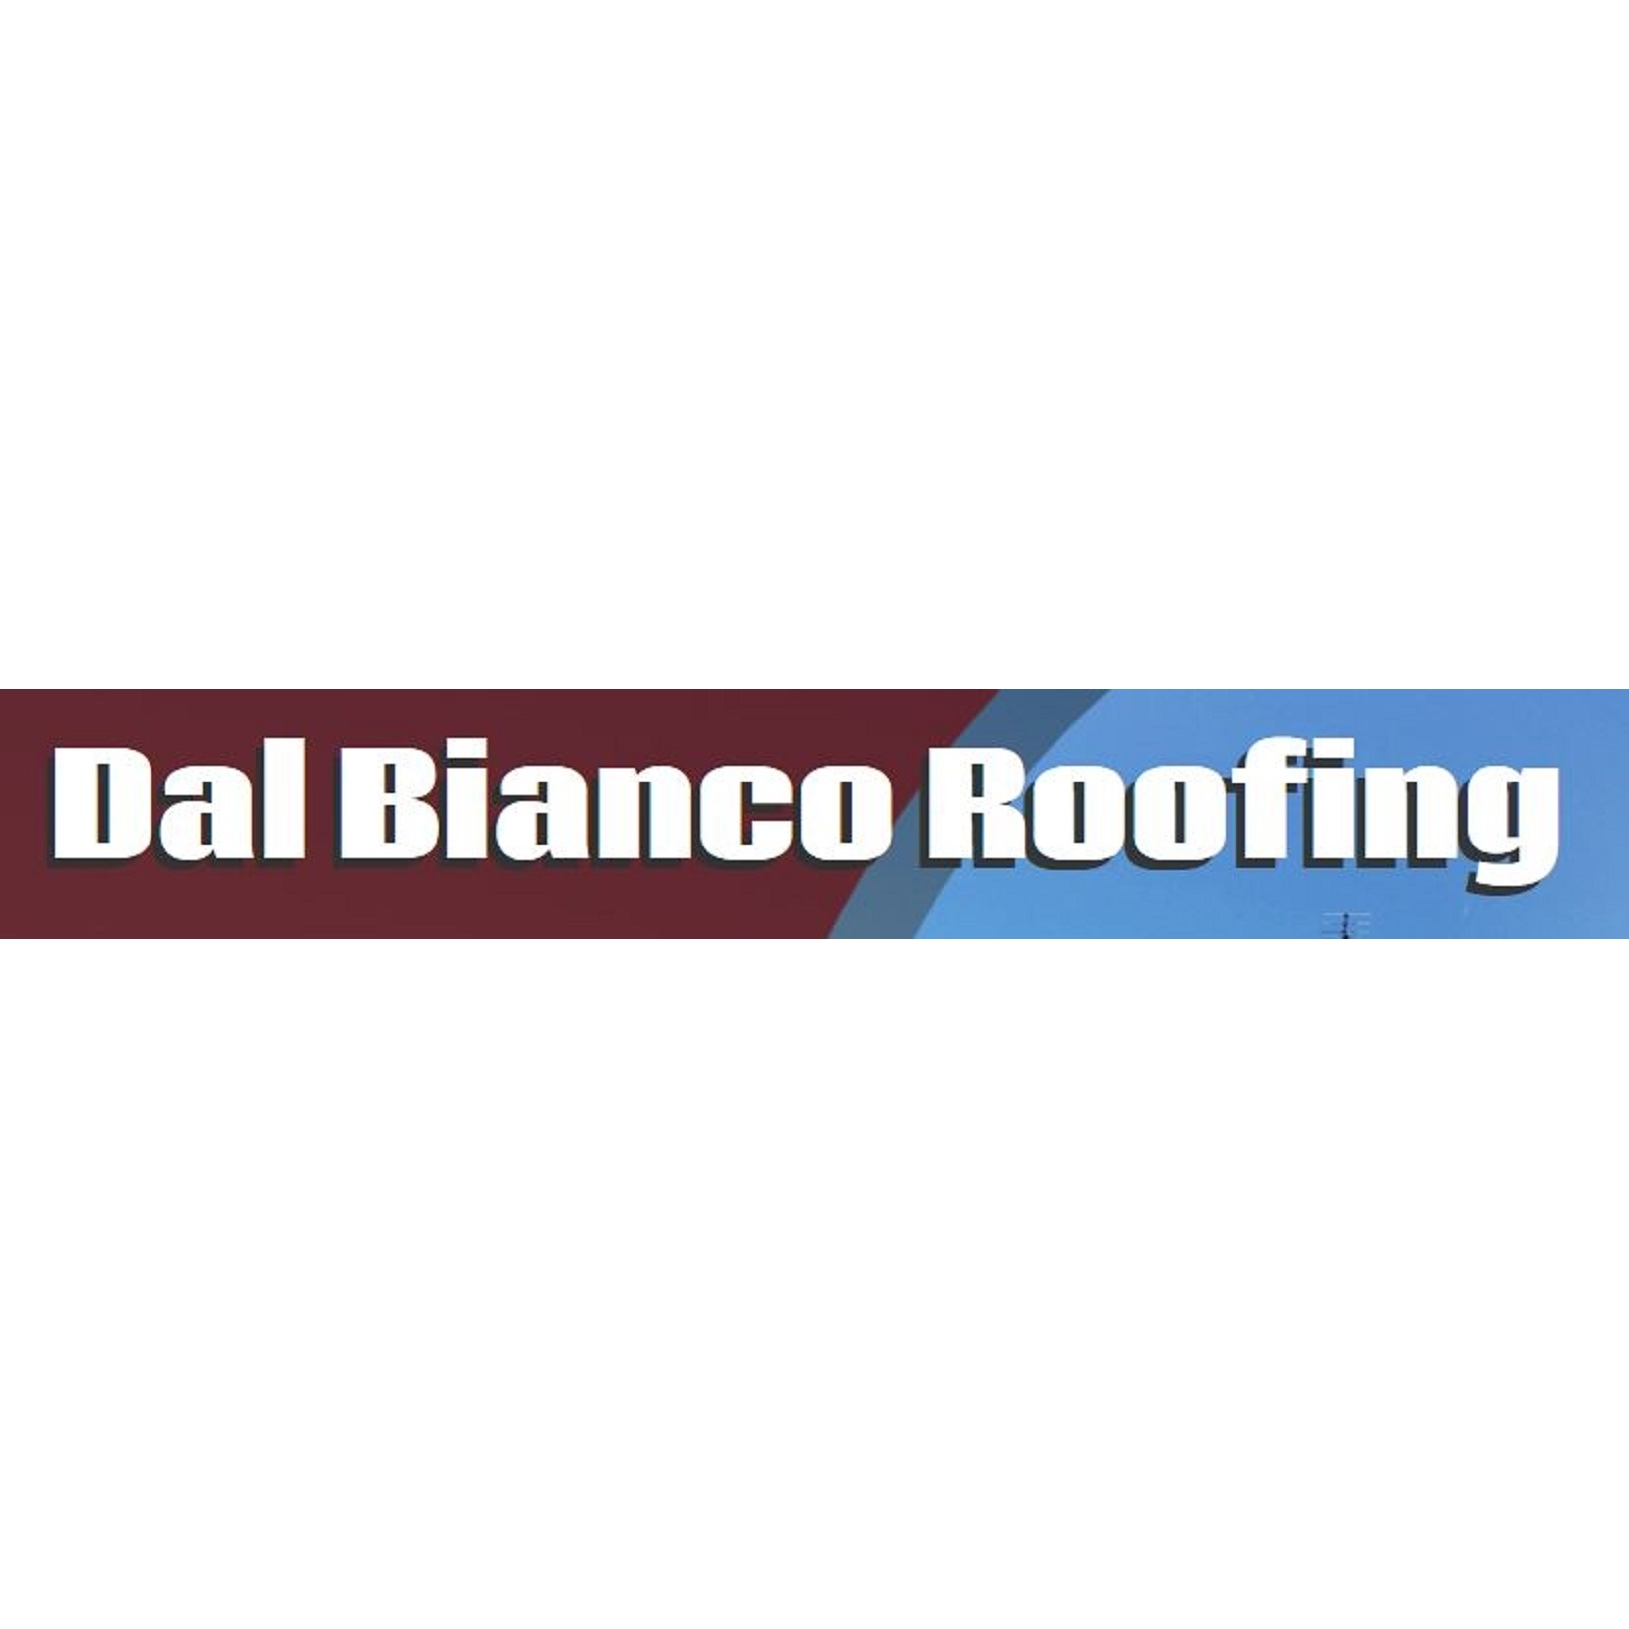 Dal Bianco Roofing Co